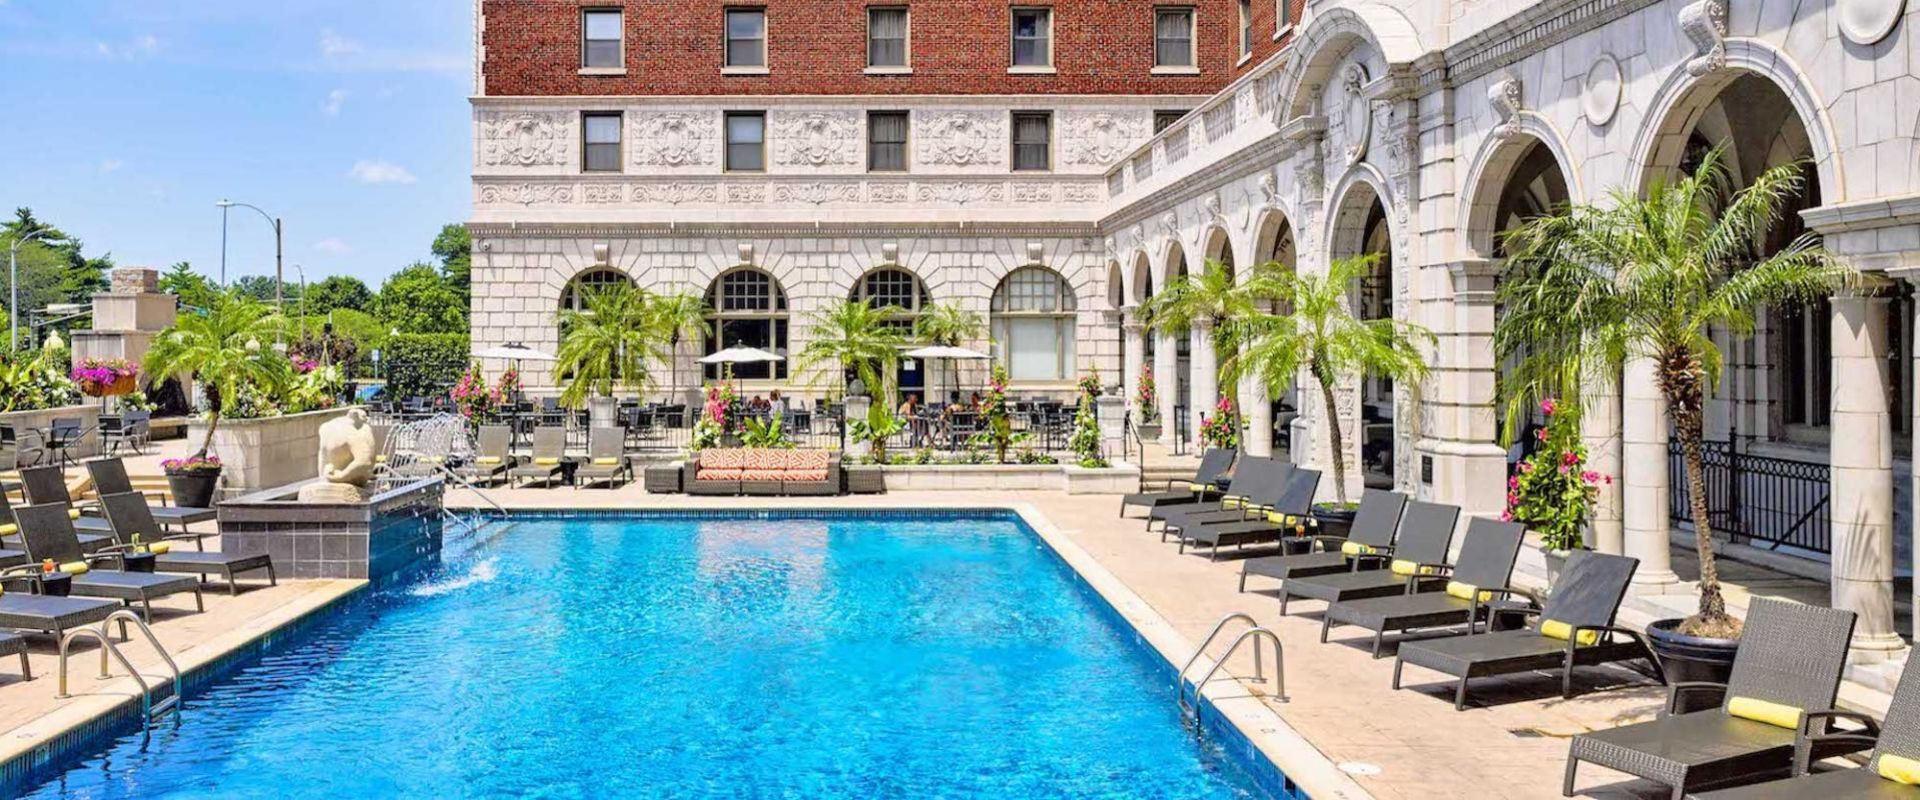 Chase Park Plaza Pool